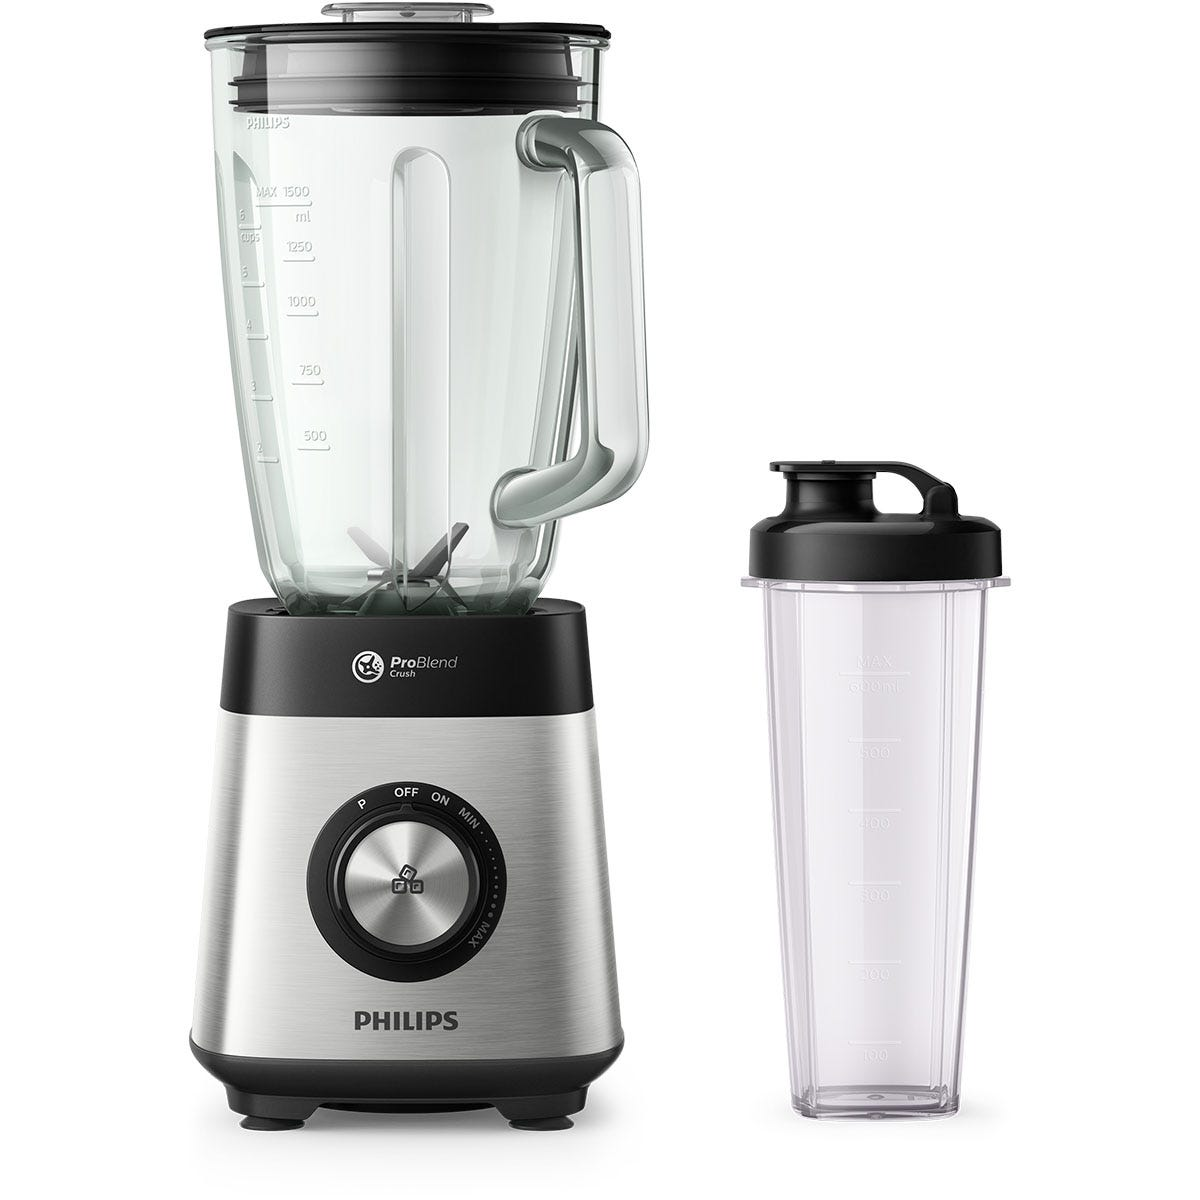 Philips HR3573/91 1000W Series 5000 Blender - Silver